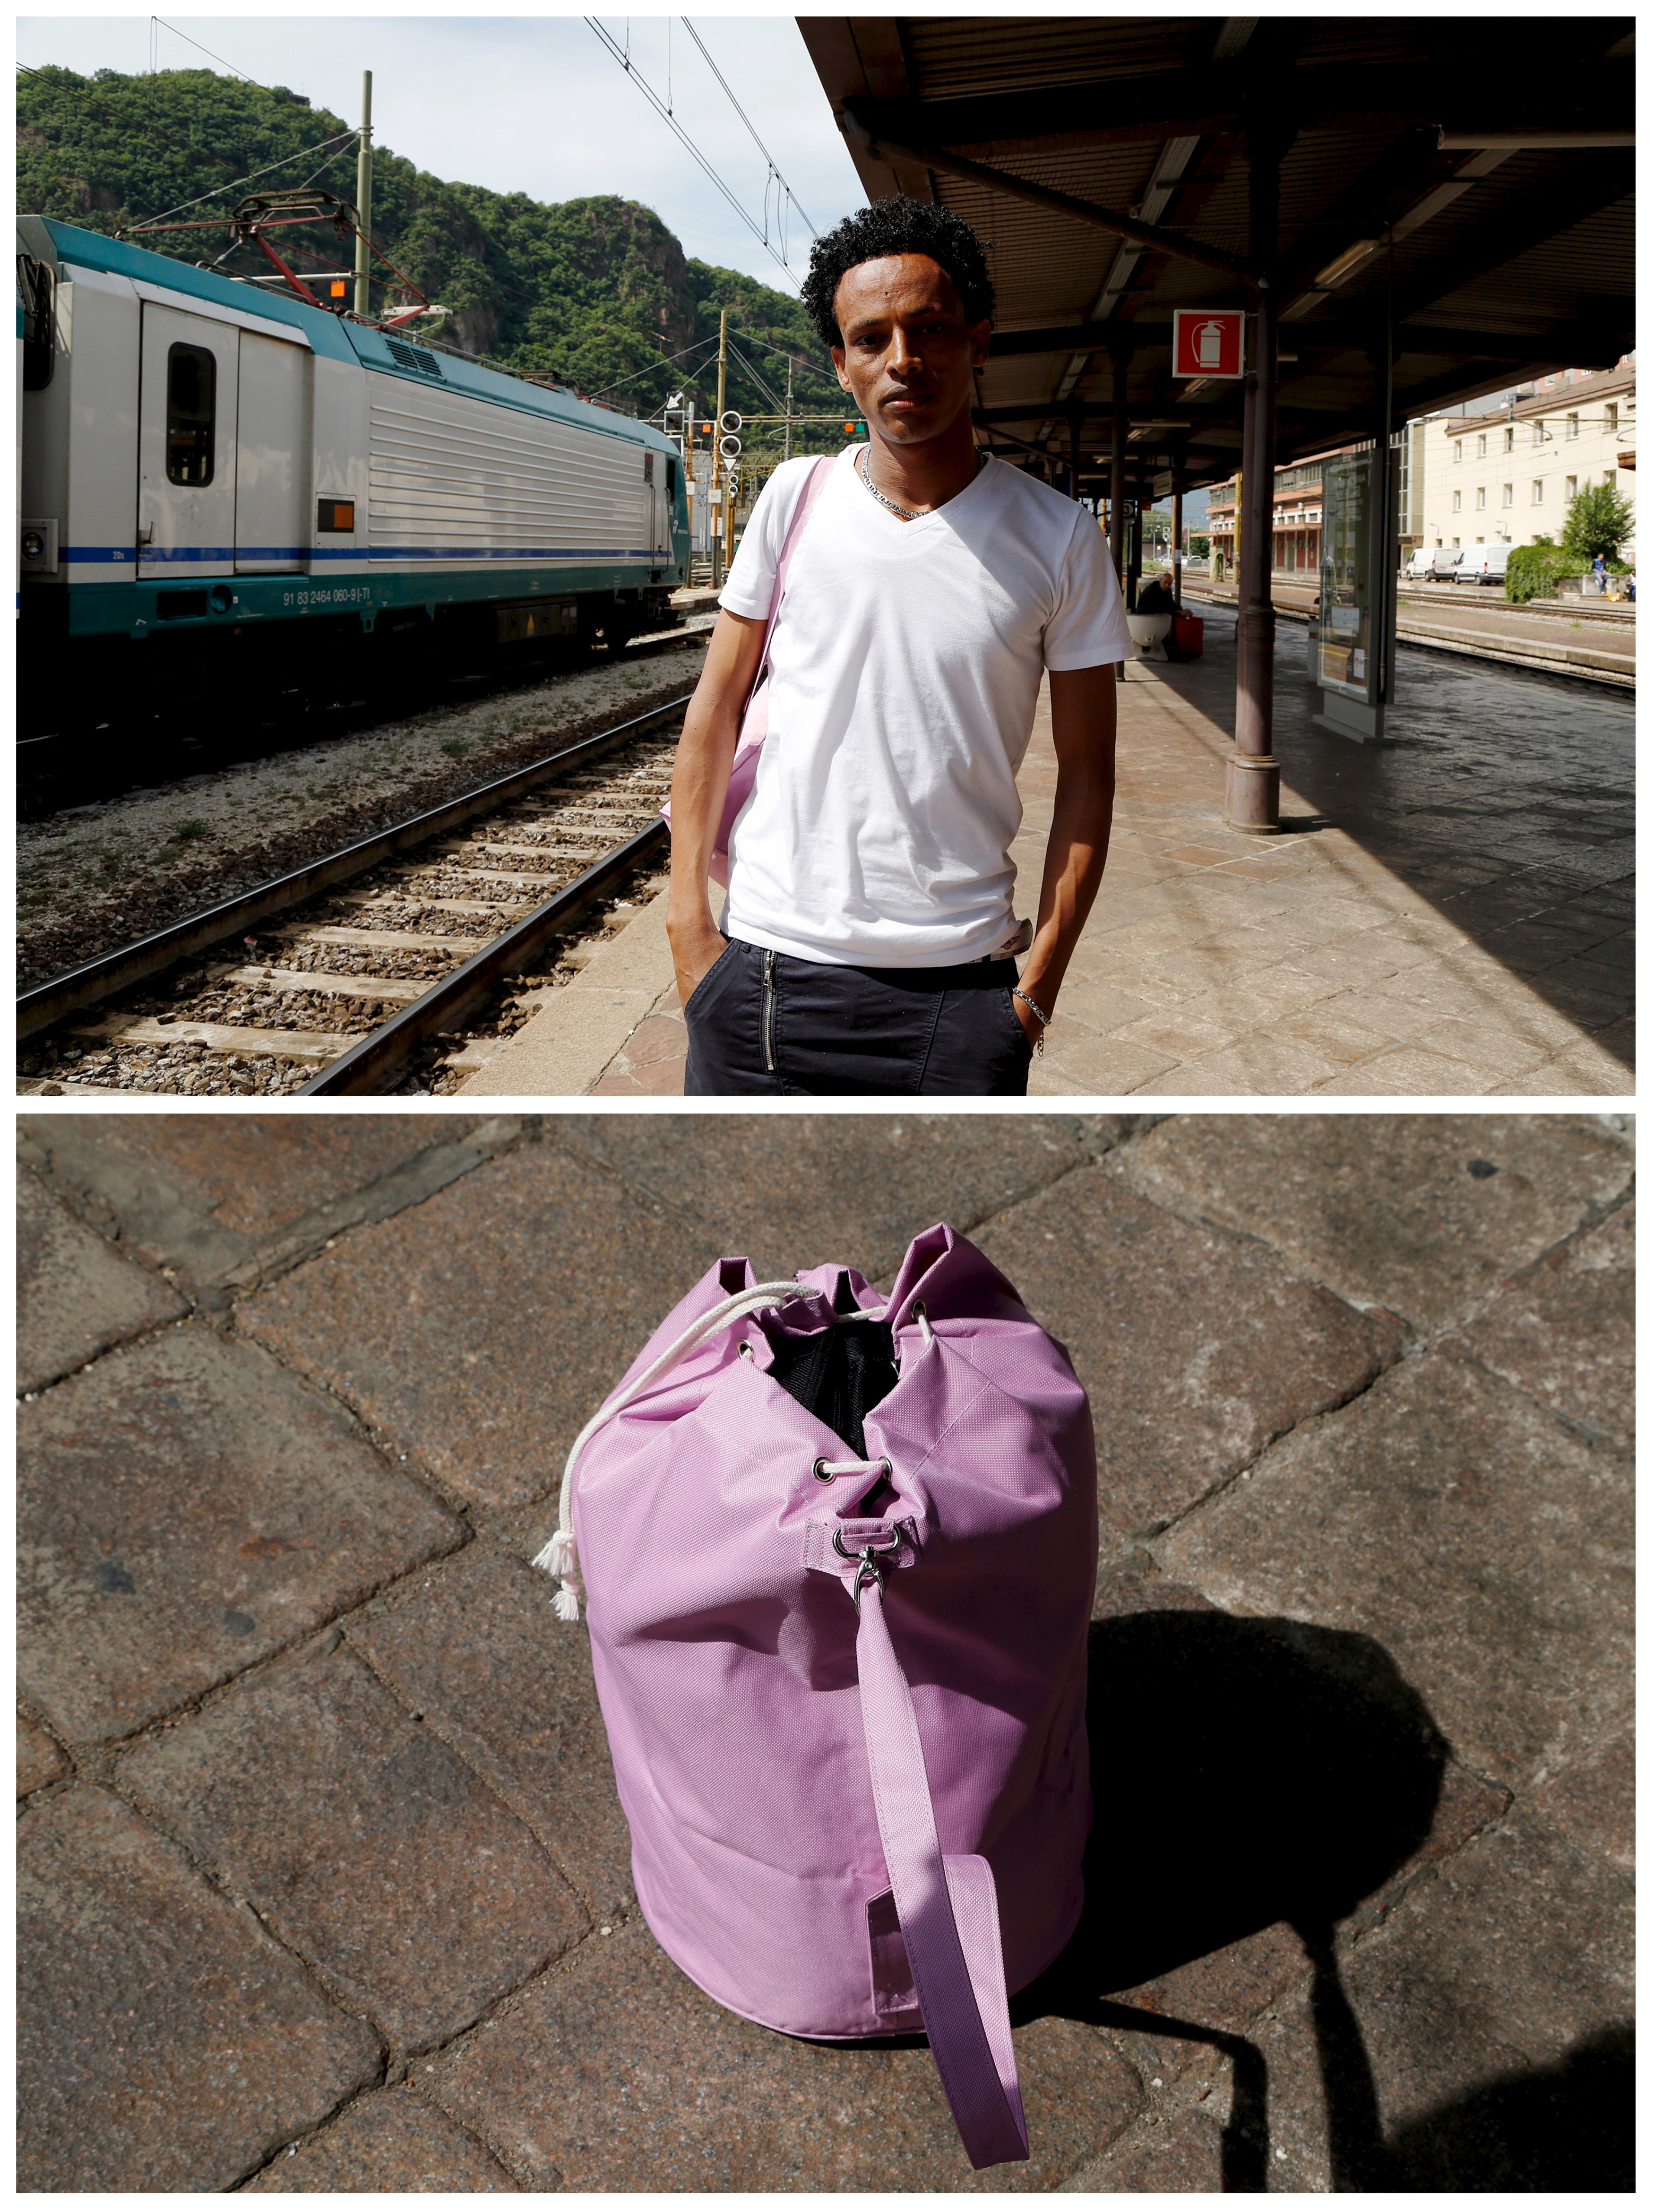 Eritrean migrant Dejen Asefaw, 24, waits with his bag to take a train in Bolzano, Italy, to the Brenner Alpine pass that marks the Italy-Austria border on May 28, 2015. Asefaw left Eritrea because he was drafted into the national military service, assigned to teach high school, and paid the equivalent of $5 per week. He said he could not survive on such a small salary. Asefaw wants to gain asylum in Sweden, where his brother lives, and get a job so that he can send money home. Photo by Stefano Rellandini/Reuters